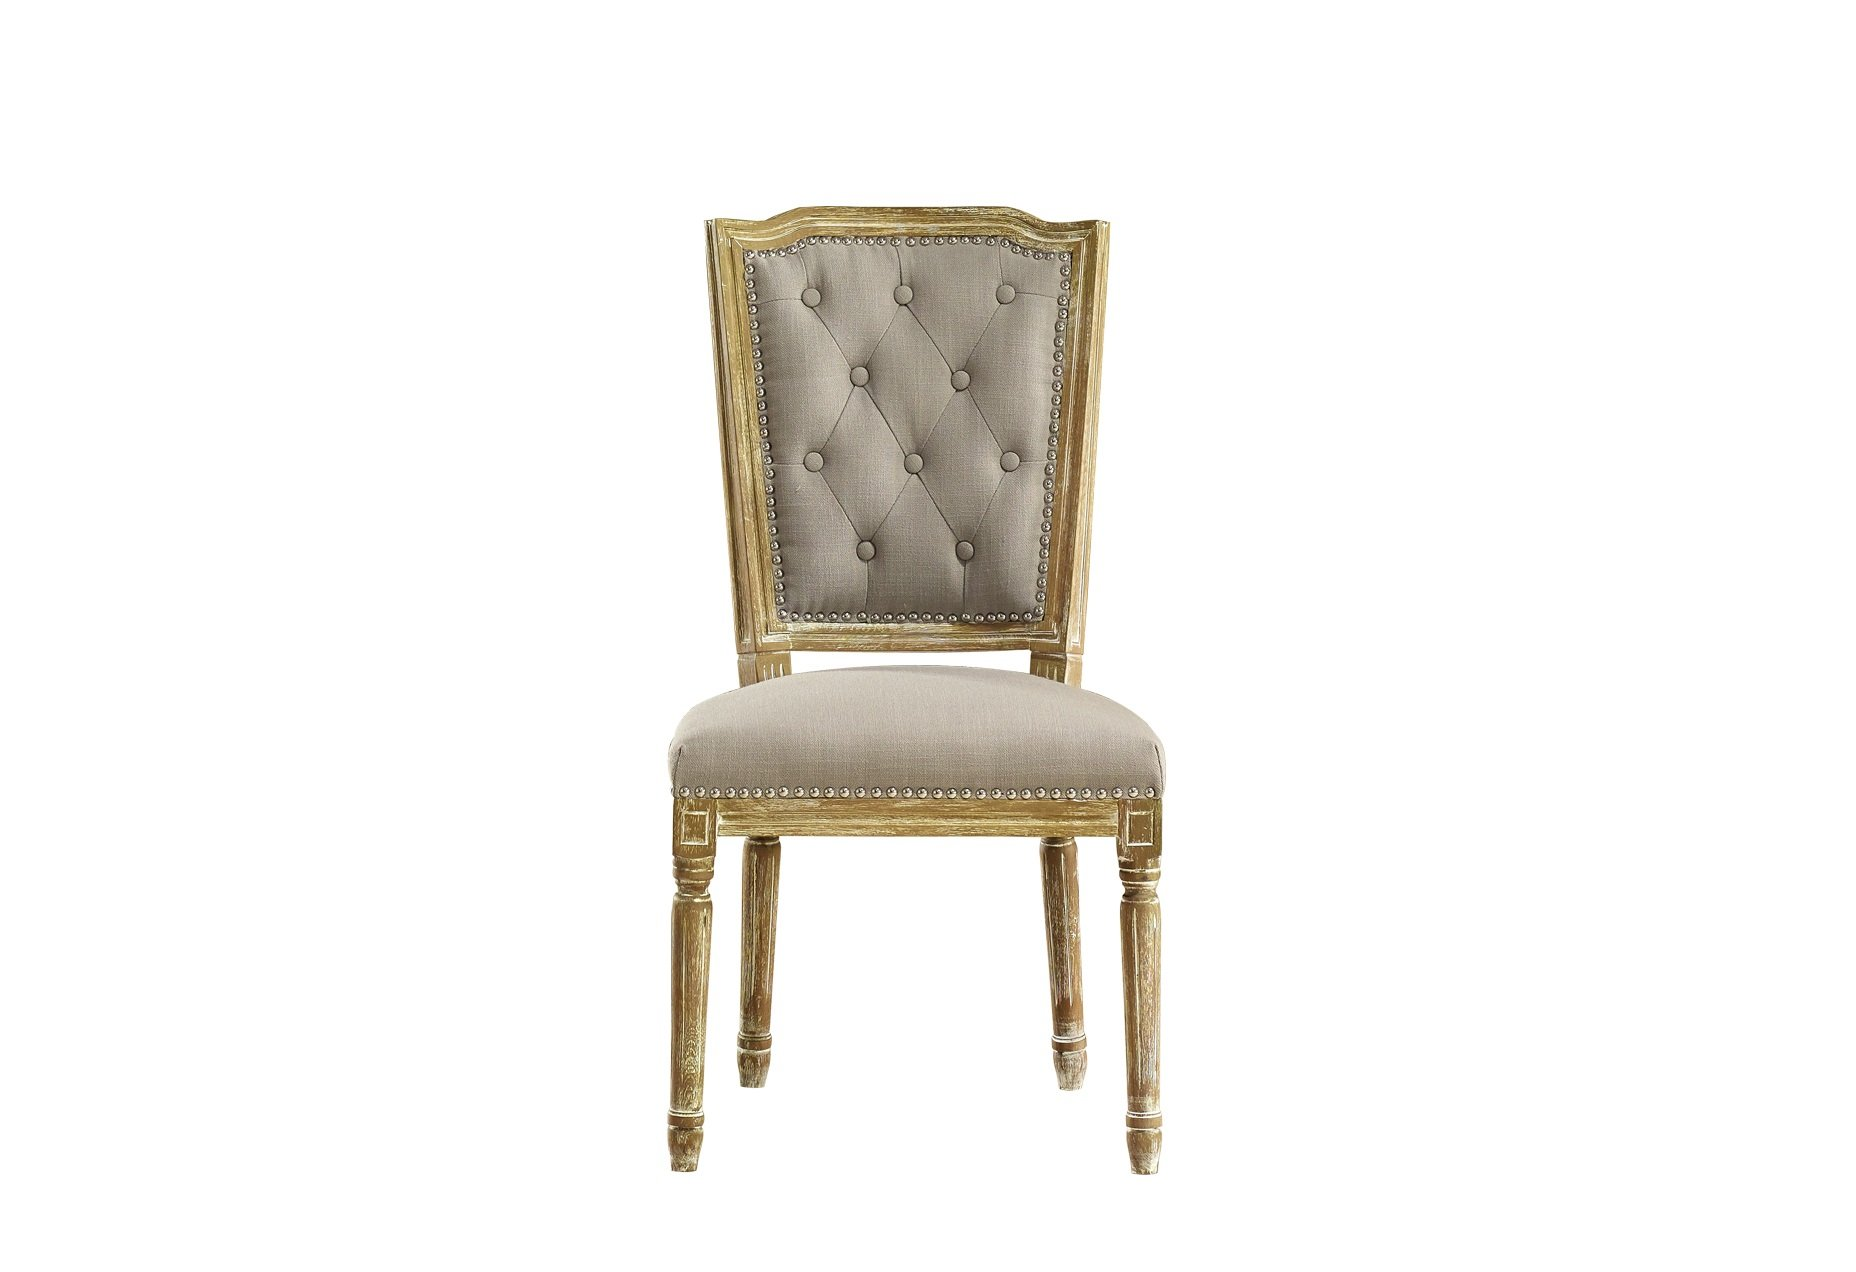 Baxton Studio Estelle Shabby Chic Rustic French Country Cottage Weathered Oak Linen Button Tufted Upholstered Dining Chair, Medium, Beige - Gorgeous French Provincial Style Aesthetic Improves with Age Stunning Solid Oak with White Wash Effect - kitchen-dining-room-furniture, kitchen-dining-room, kitchen-dining-room-chairs - 71J%2B3ntQiIL -